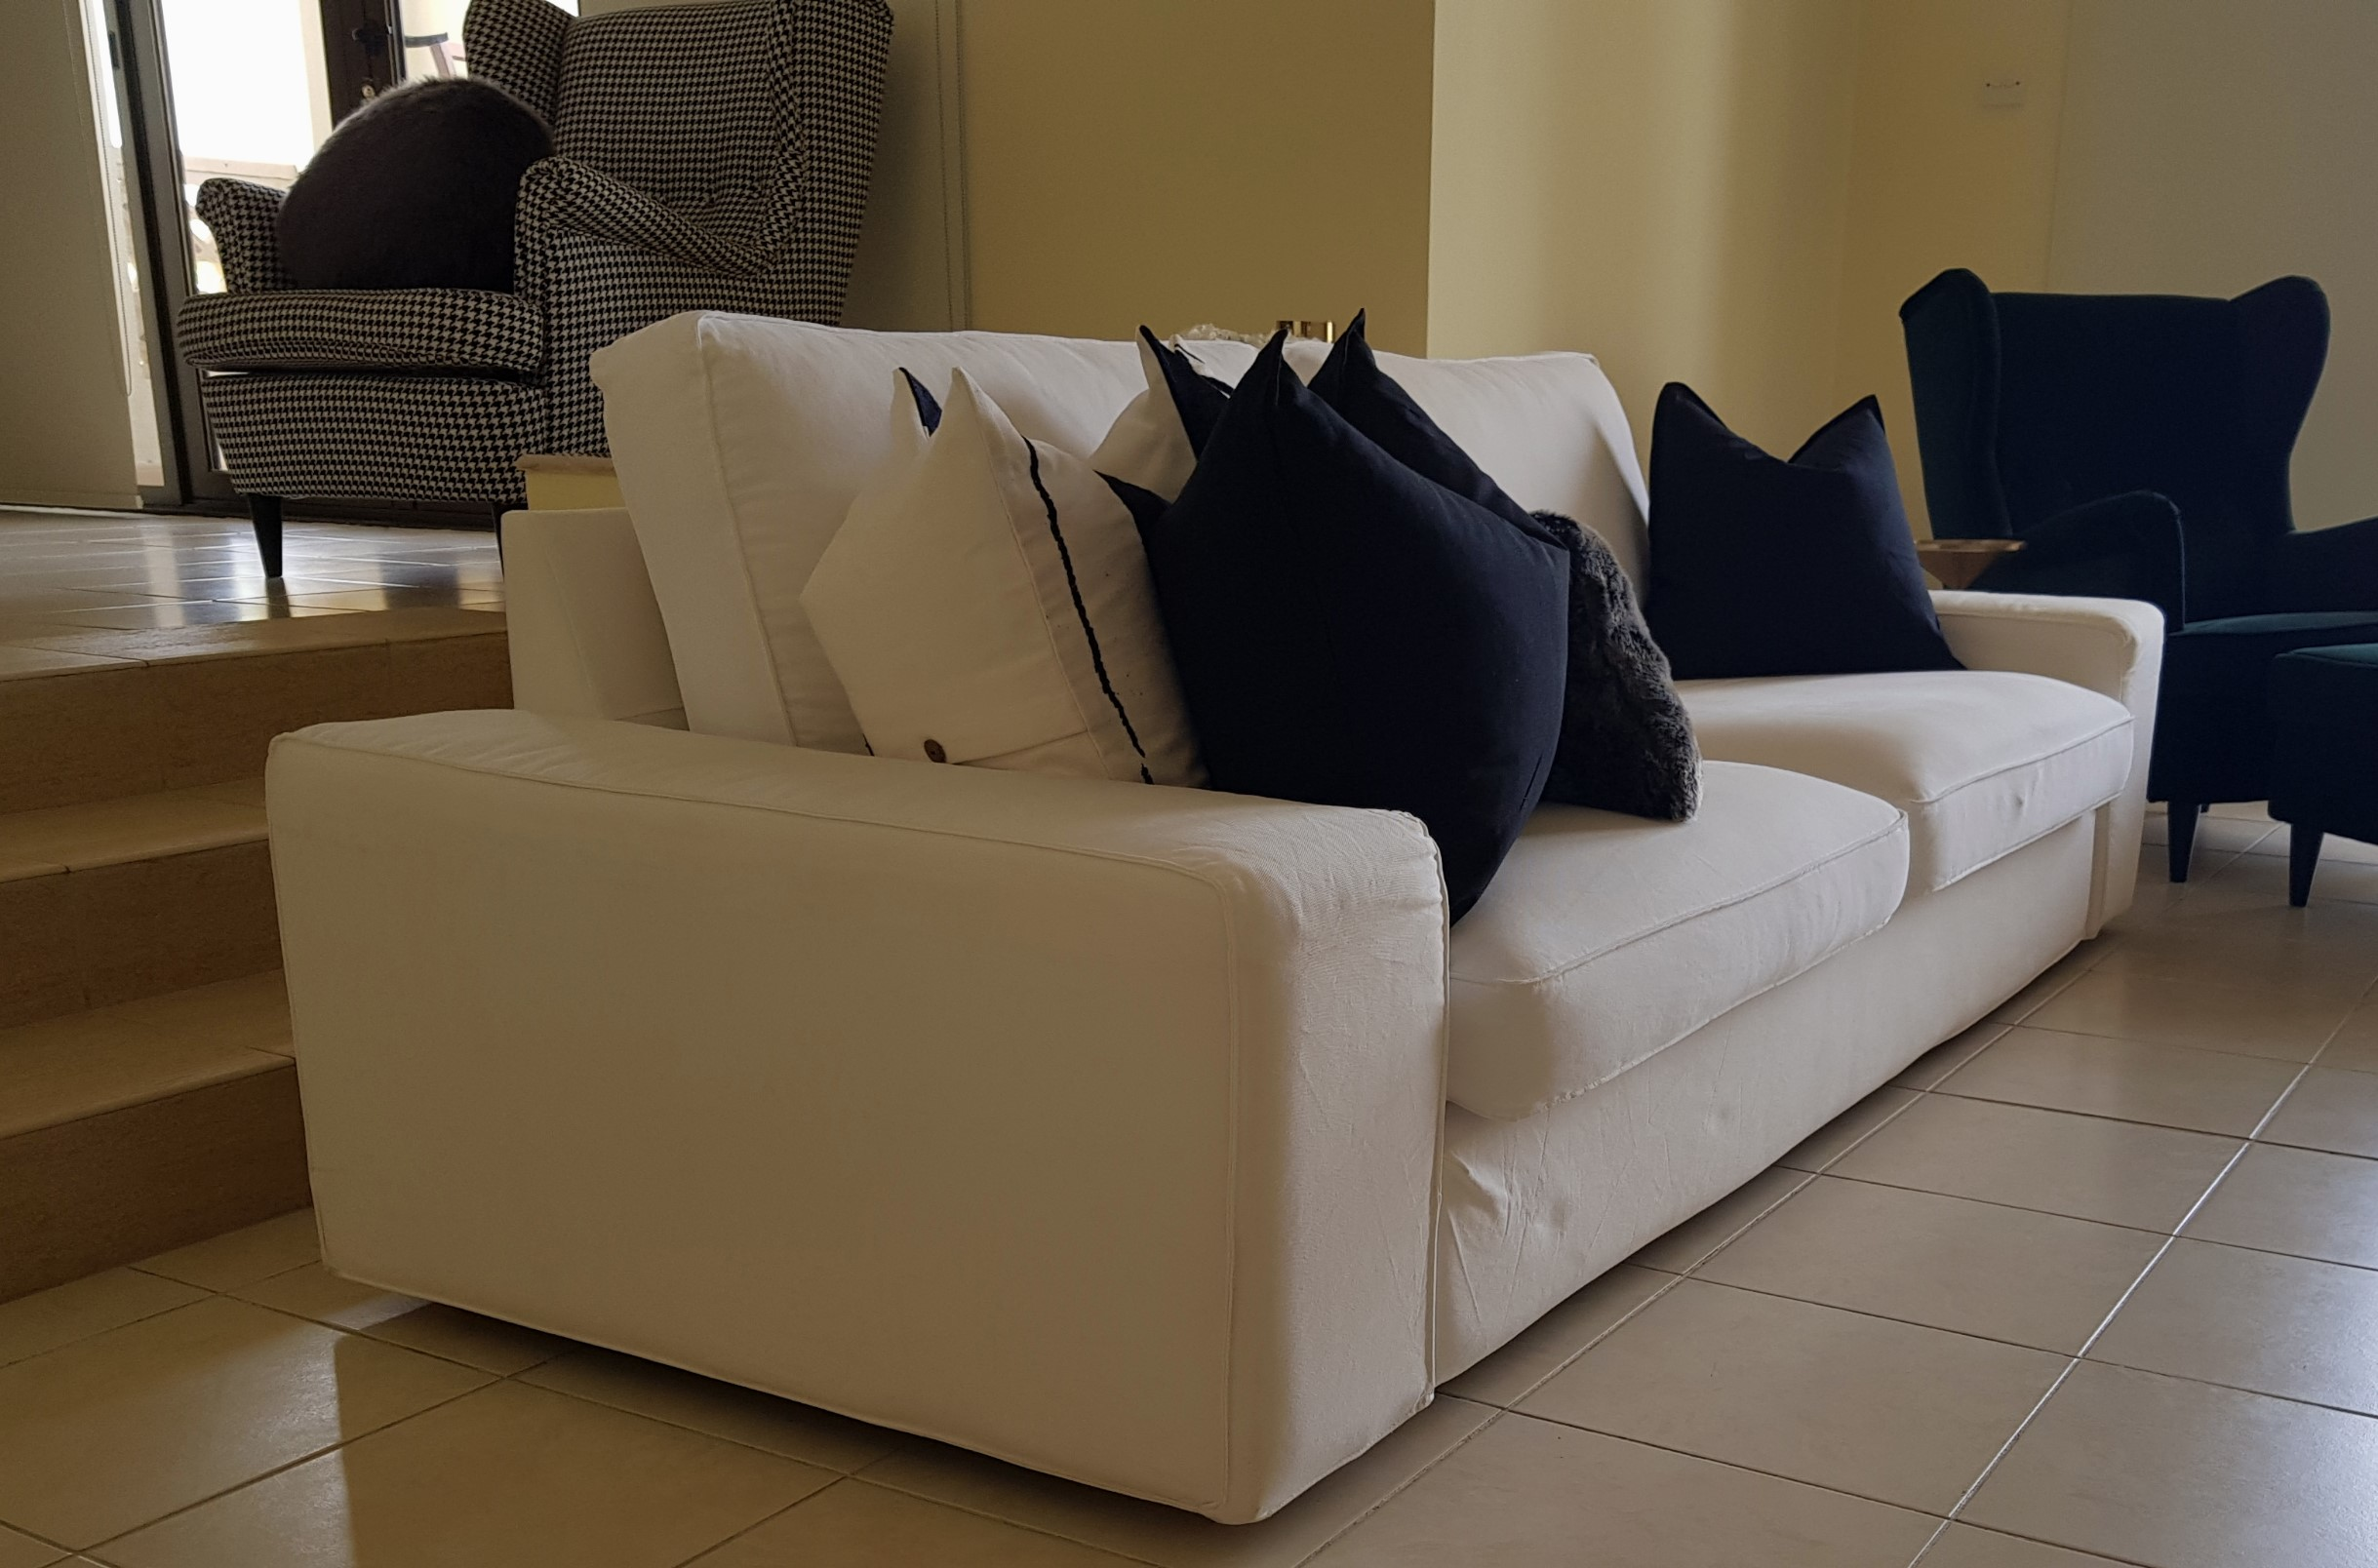 3 seater sofa side view